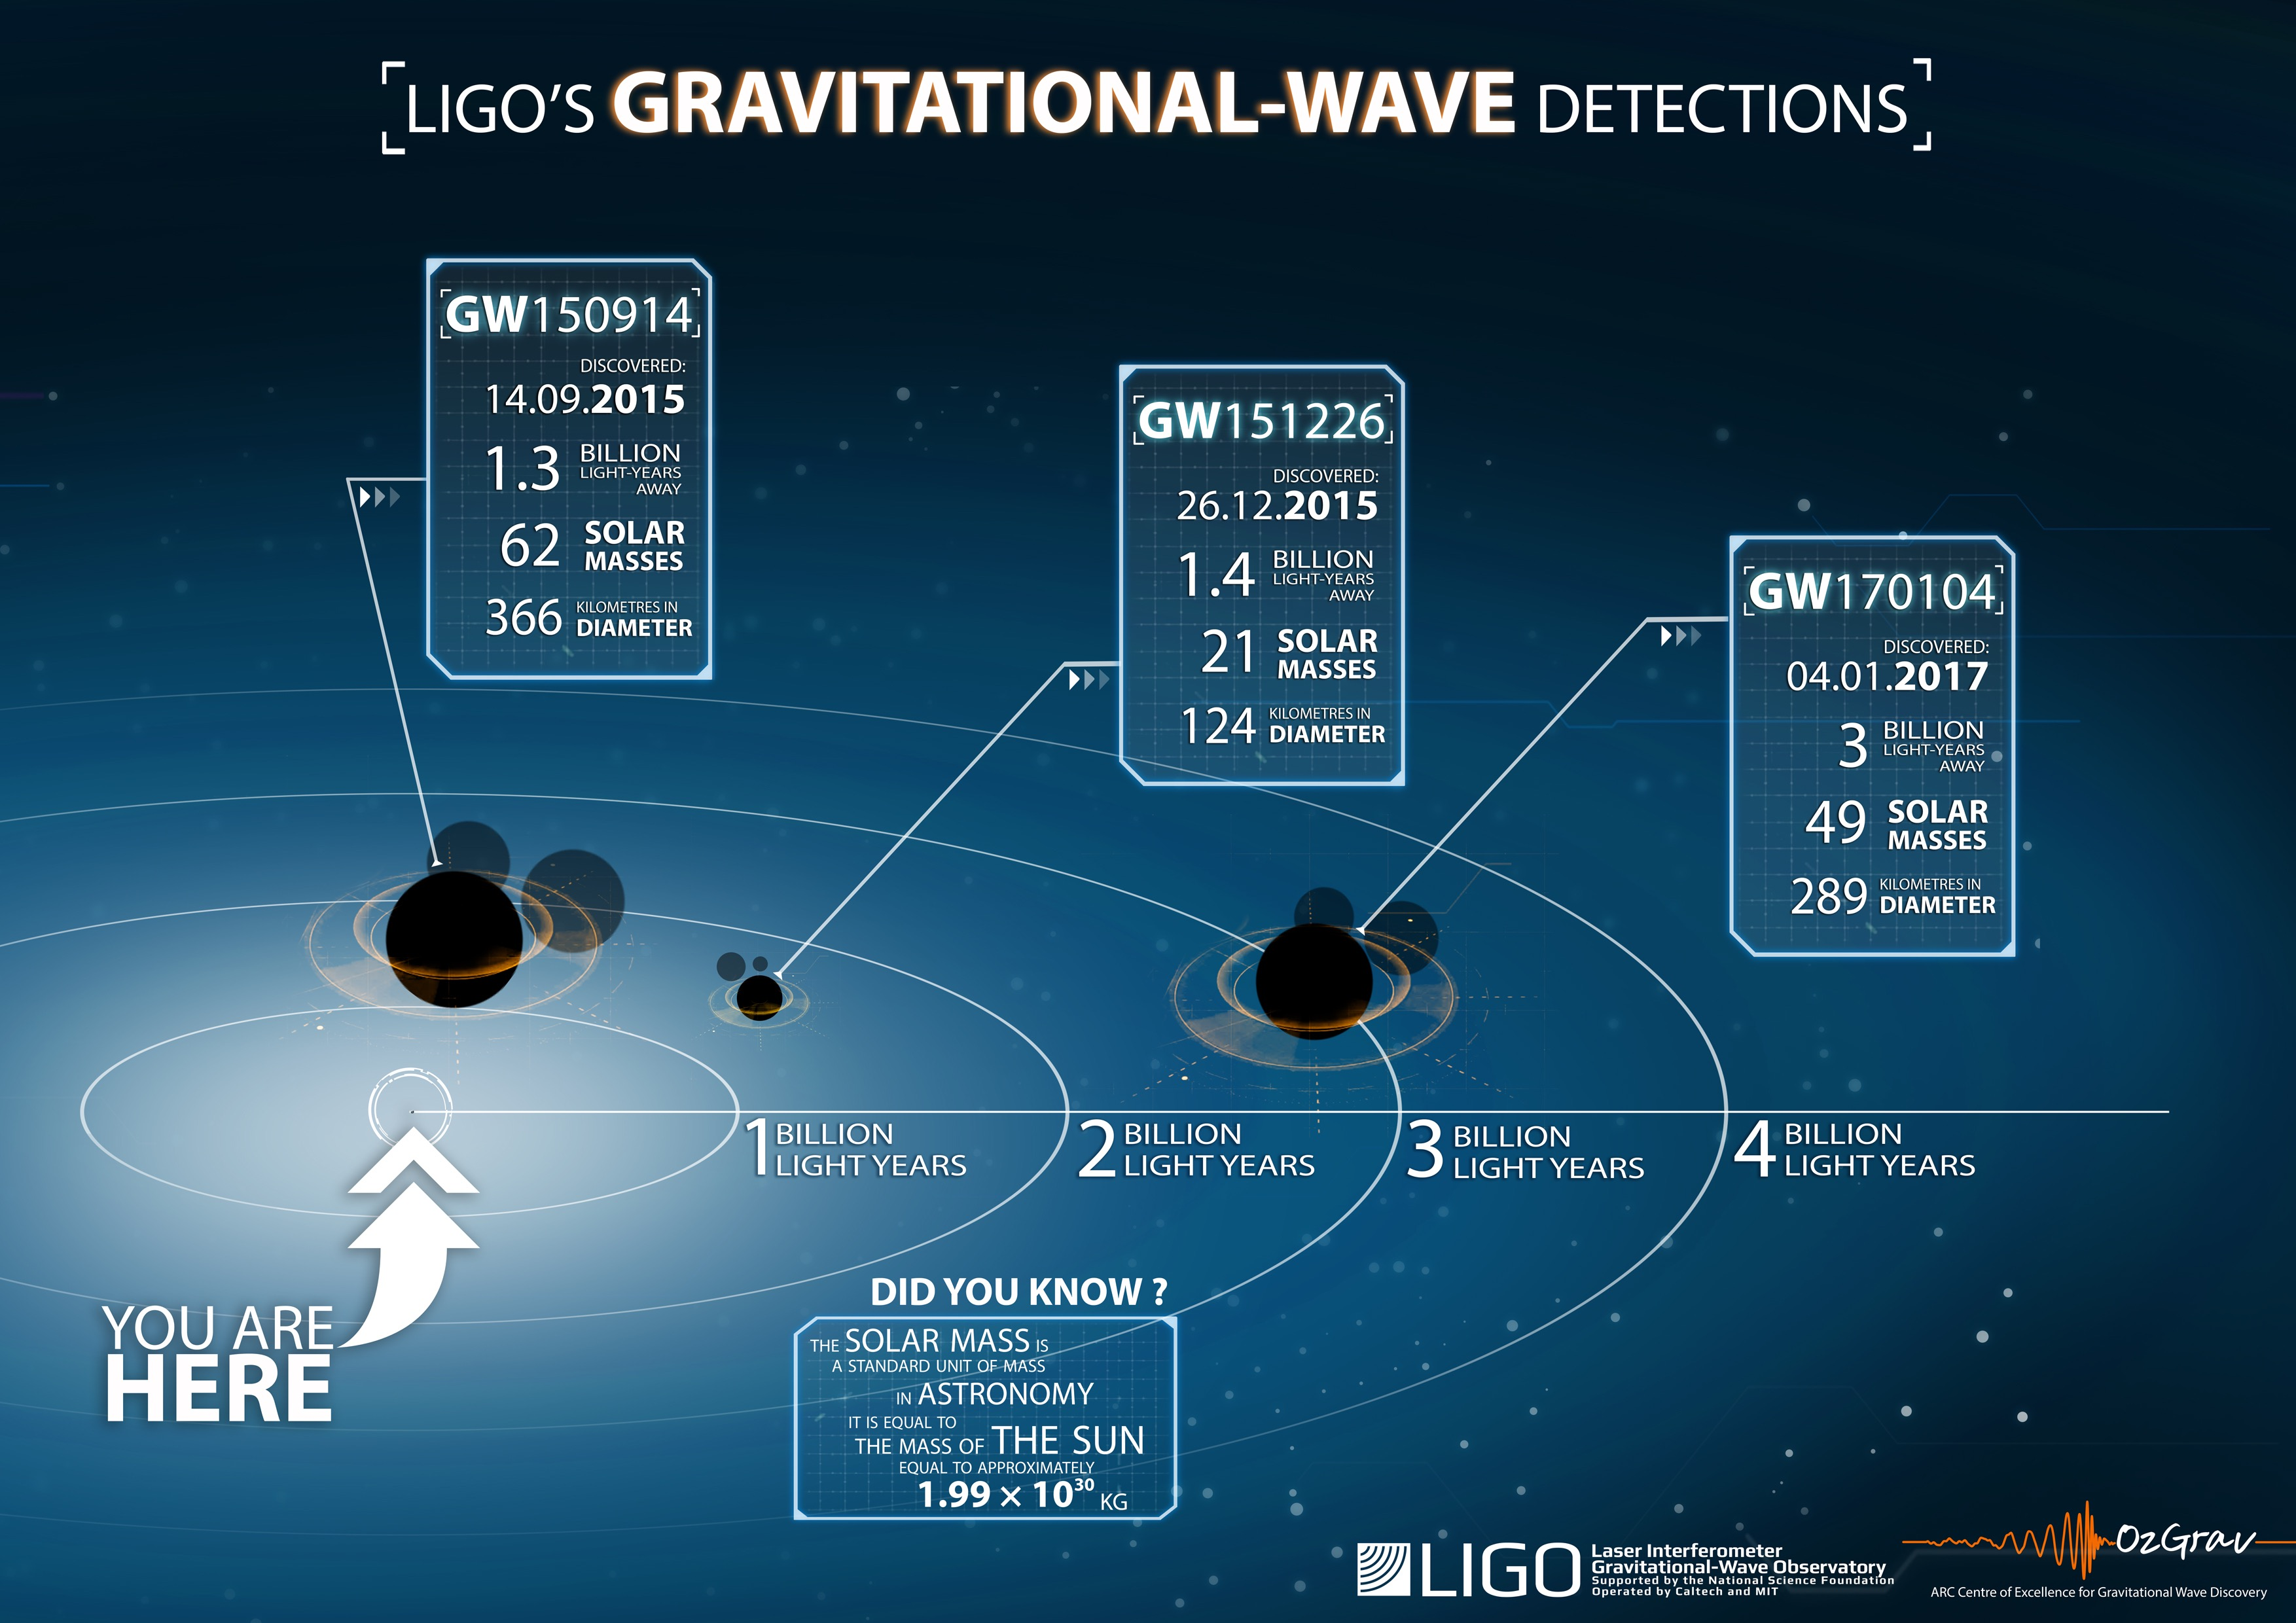 The relative locations of the three blackhole mergers detected by LIGO. The third merger is designated GW170104. Credit: LSC/OzGrav